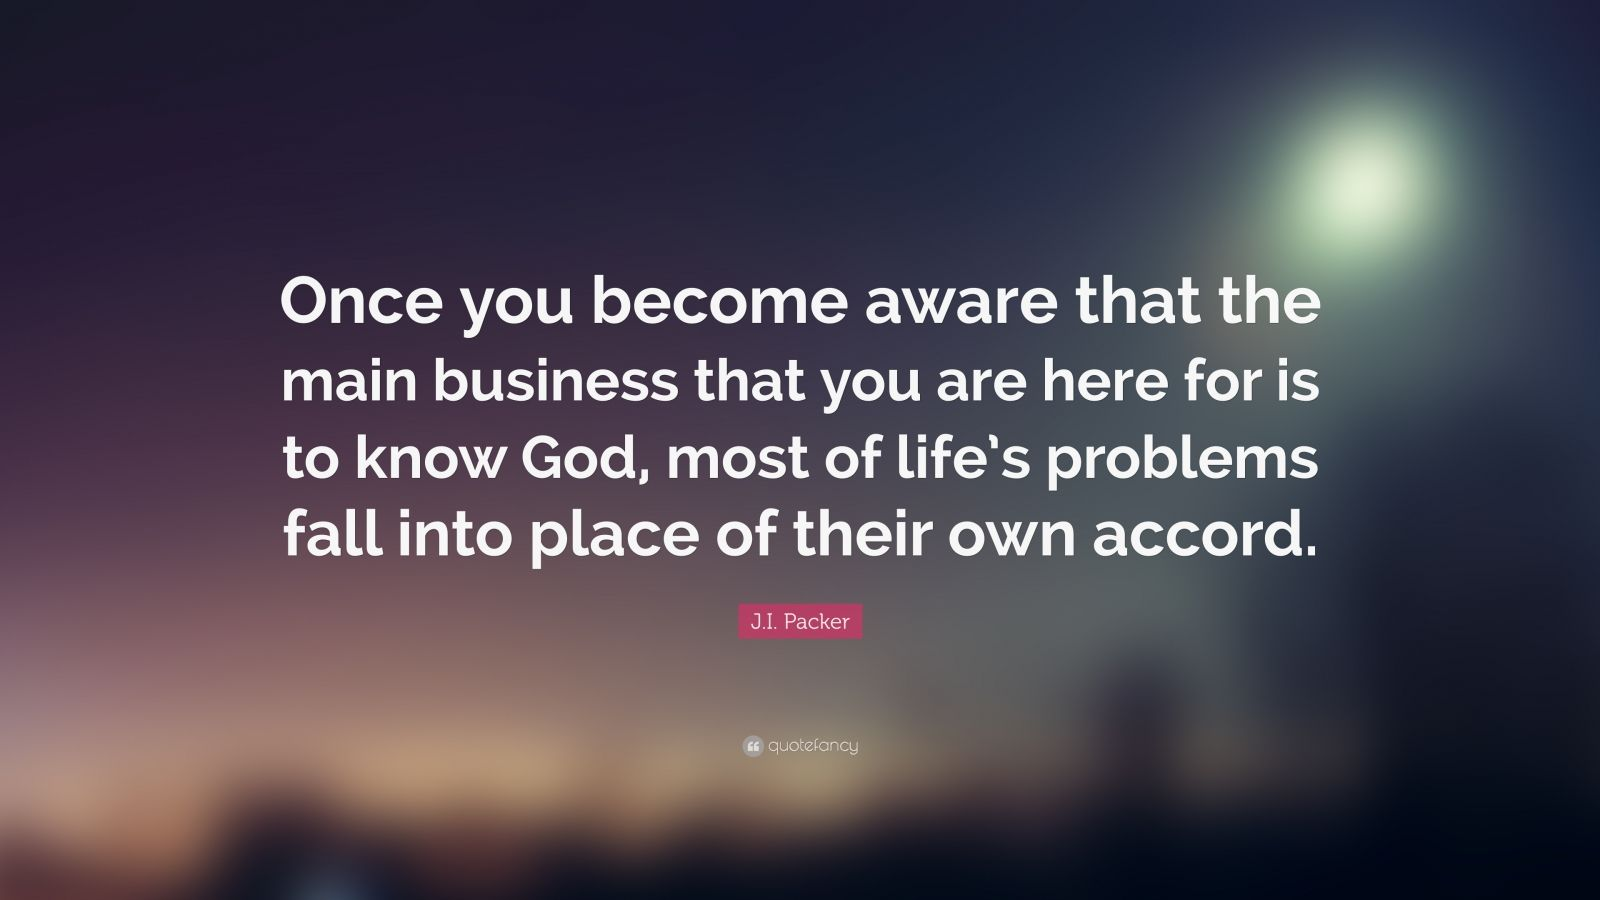 """J.I. Packer Quote: """"Once you become aware that the main business that you are here for is to know God, most of life's problems fall into place of their own accord."""""""